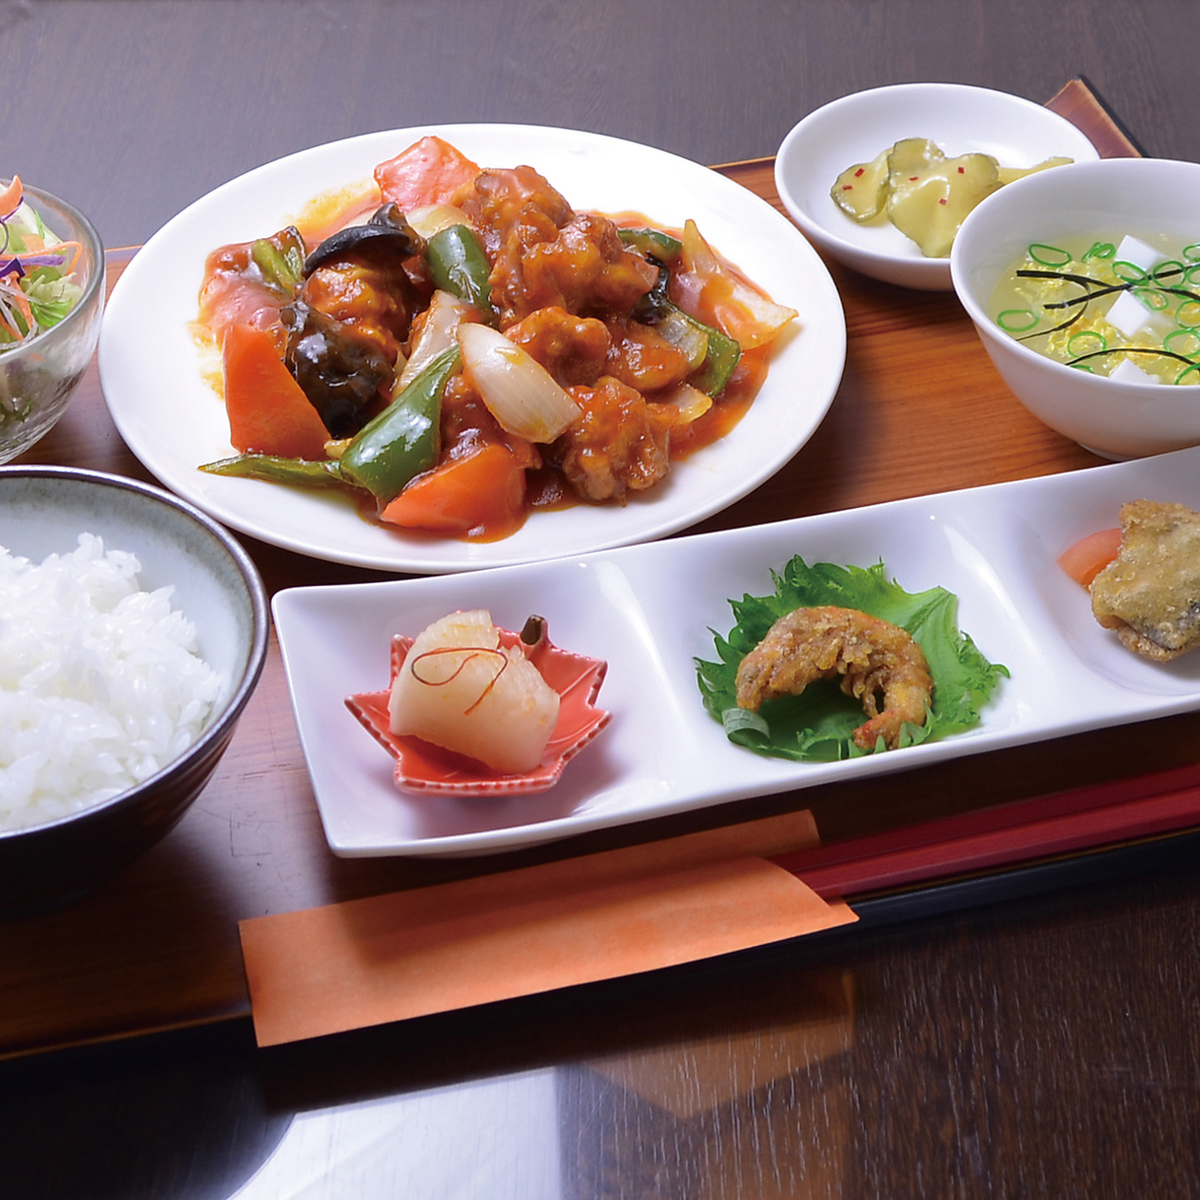 ○ Lunch to choose